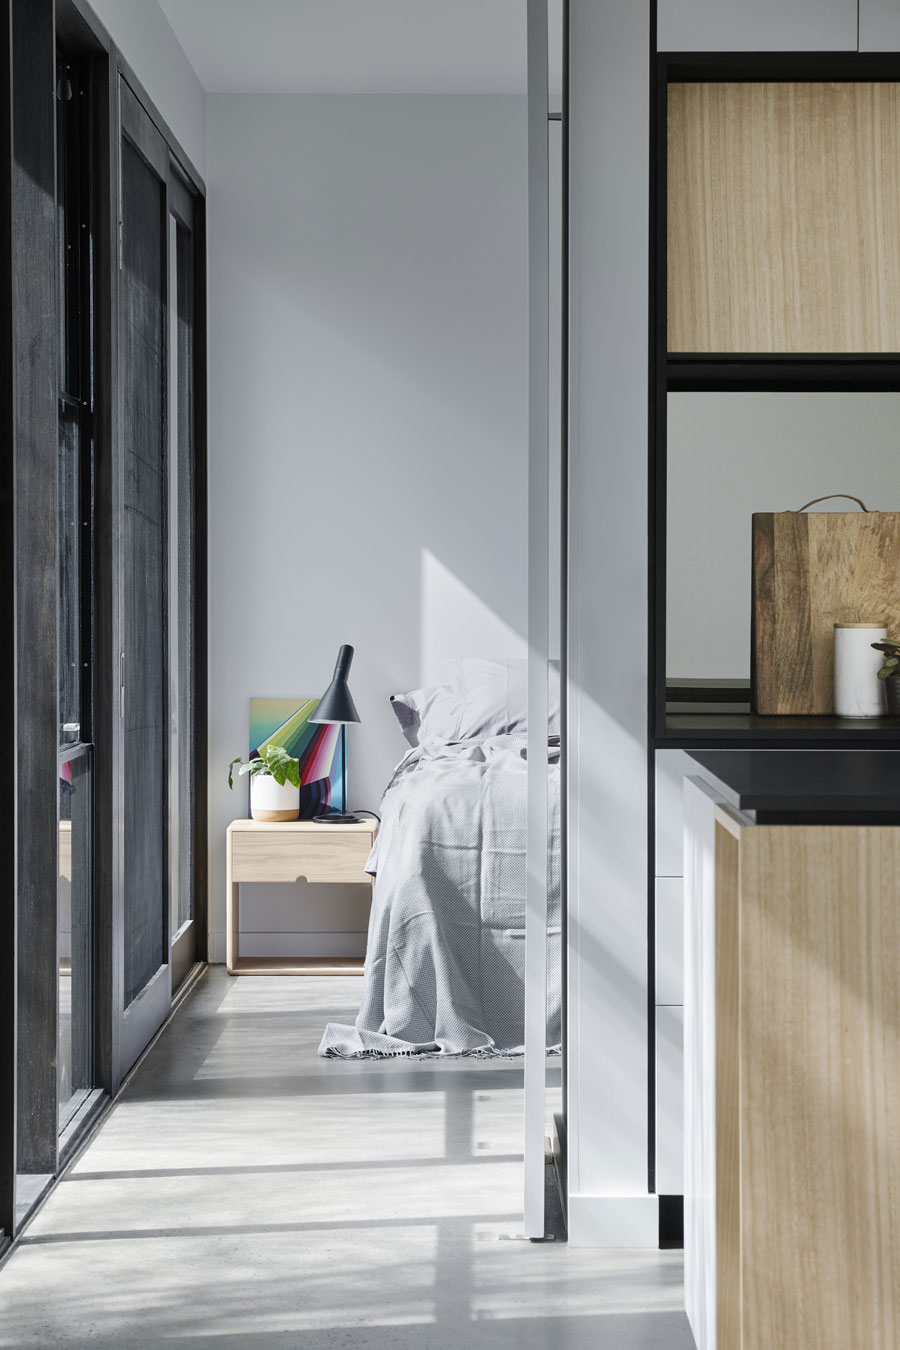 The bedroom can be closed off from the main living area with a large pivot door.